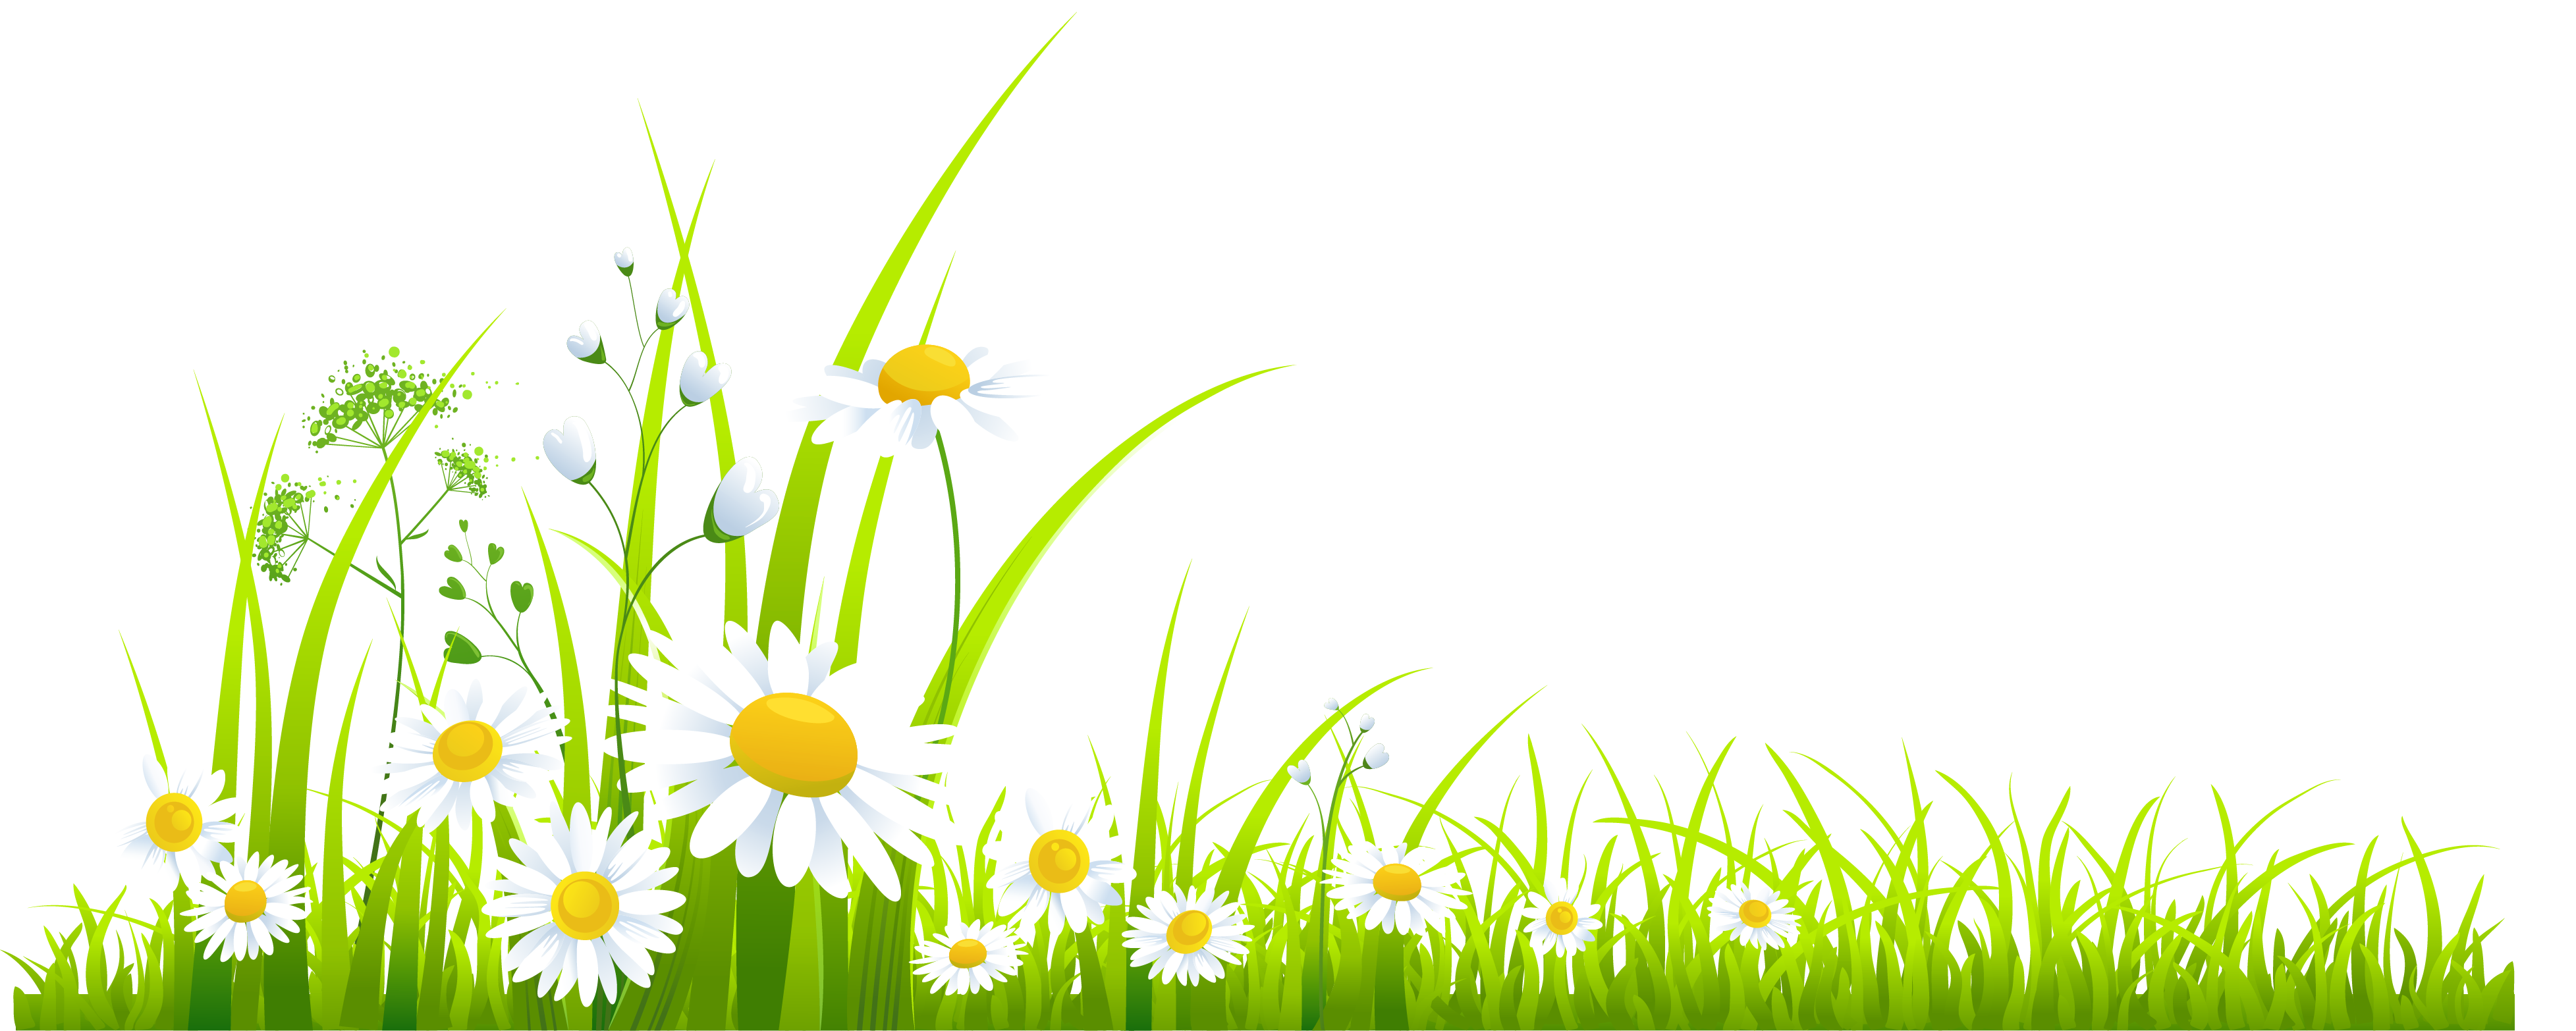 Spring clipart nature. On free images clipartgo